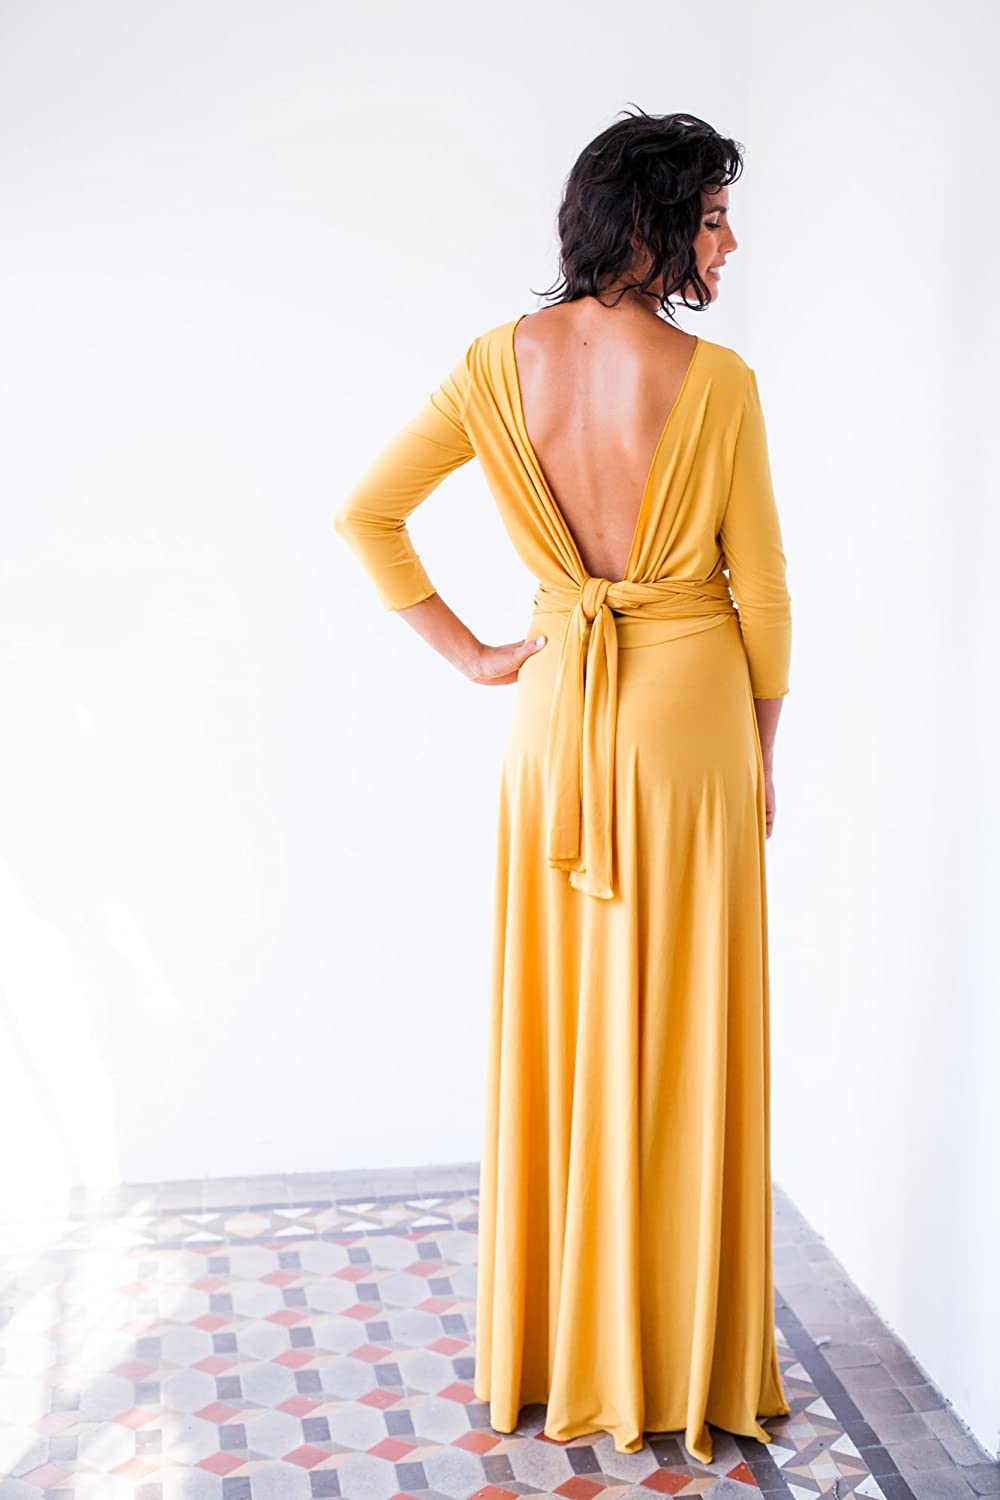 Amazon.com: Long yellow dress with sleeves, yellow evening dress with sleeves, mustard yellow dress, mustard long sleeve dress, long yellow wrap dress: ...